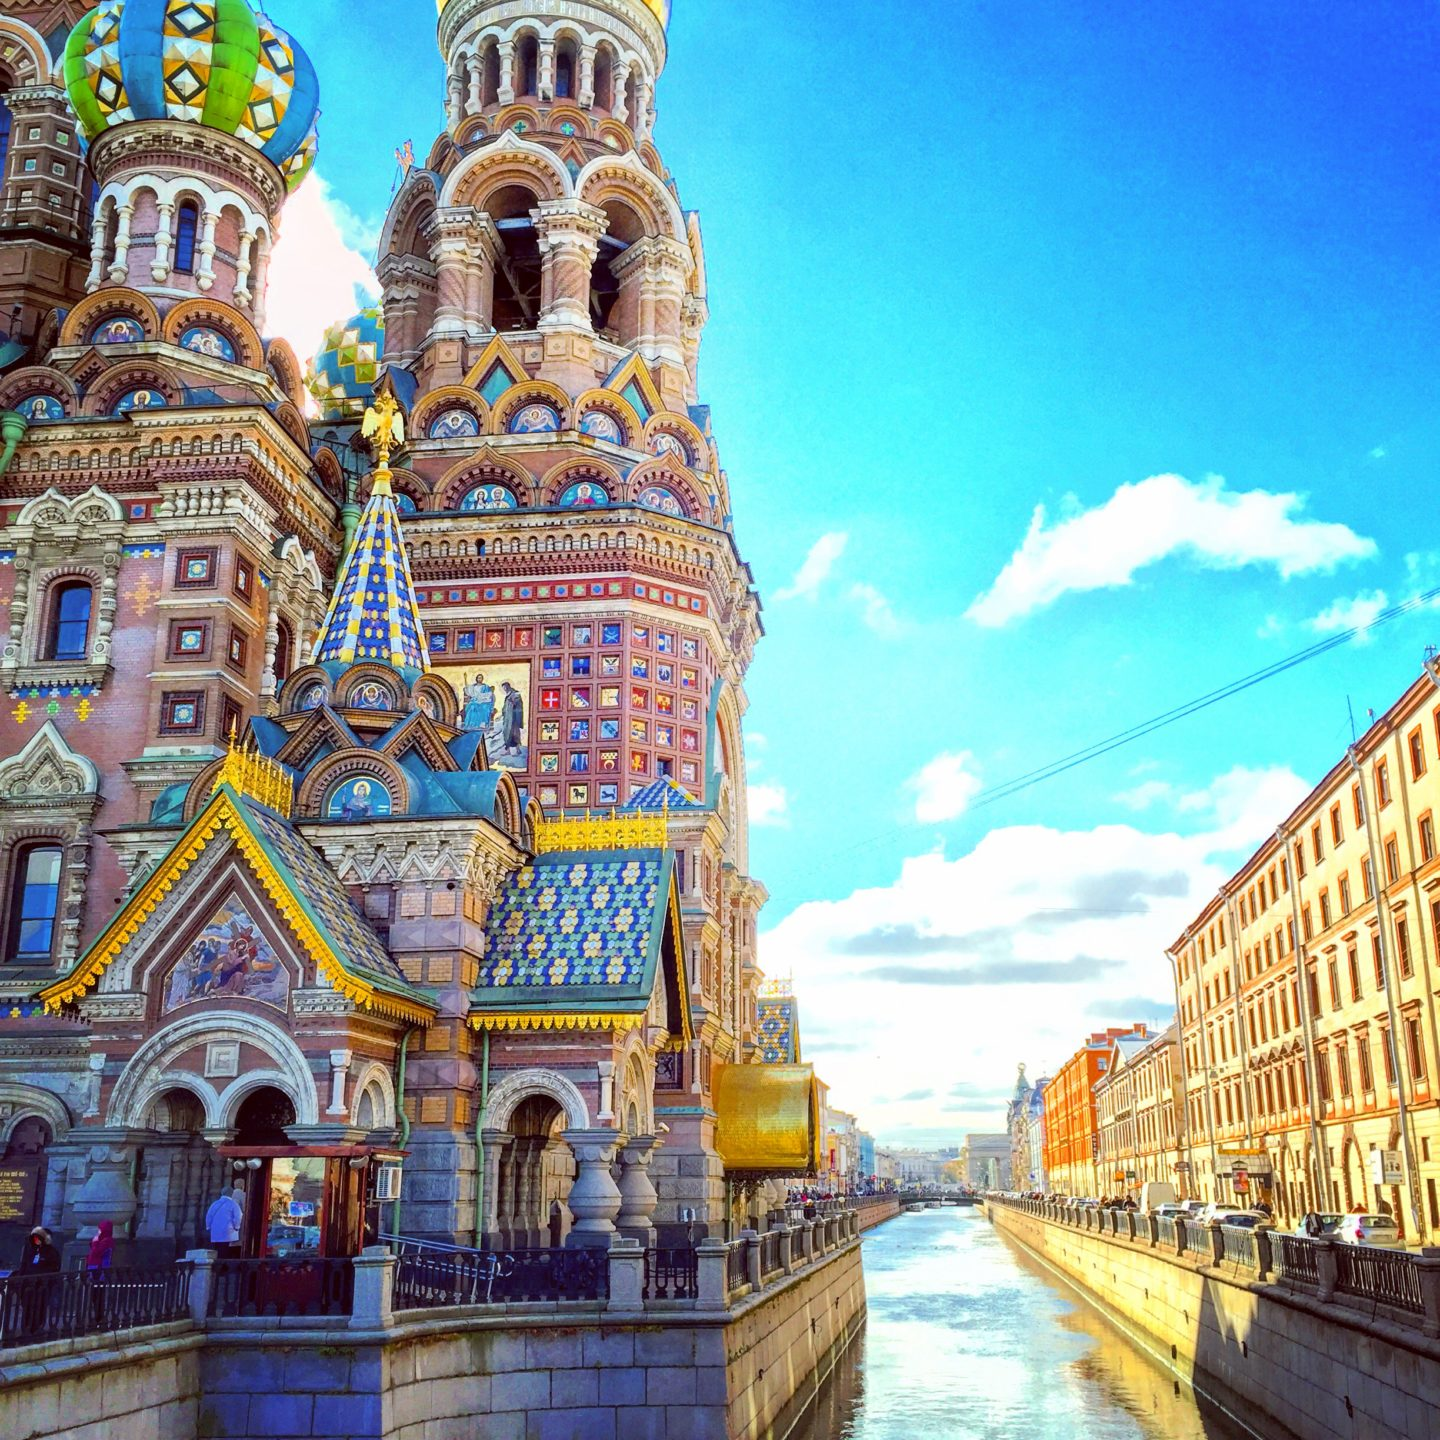 The Church of the Saviour on Blood, St. Petersburg